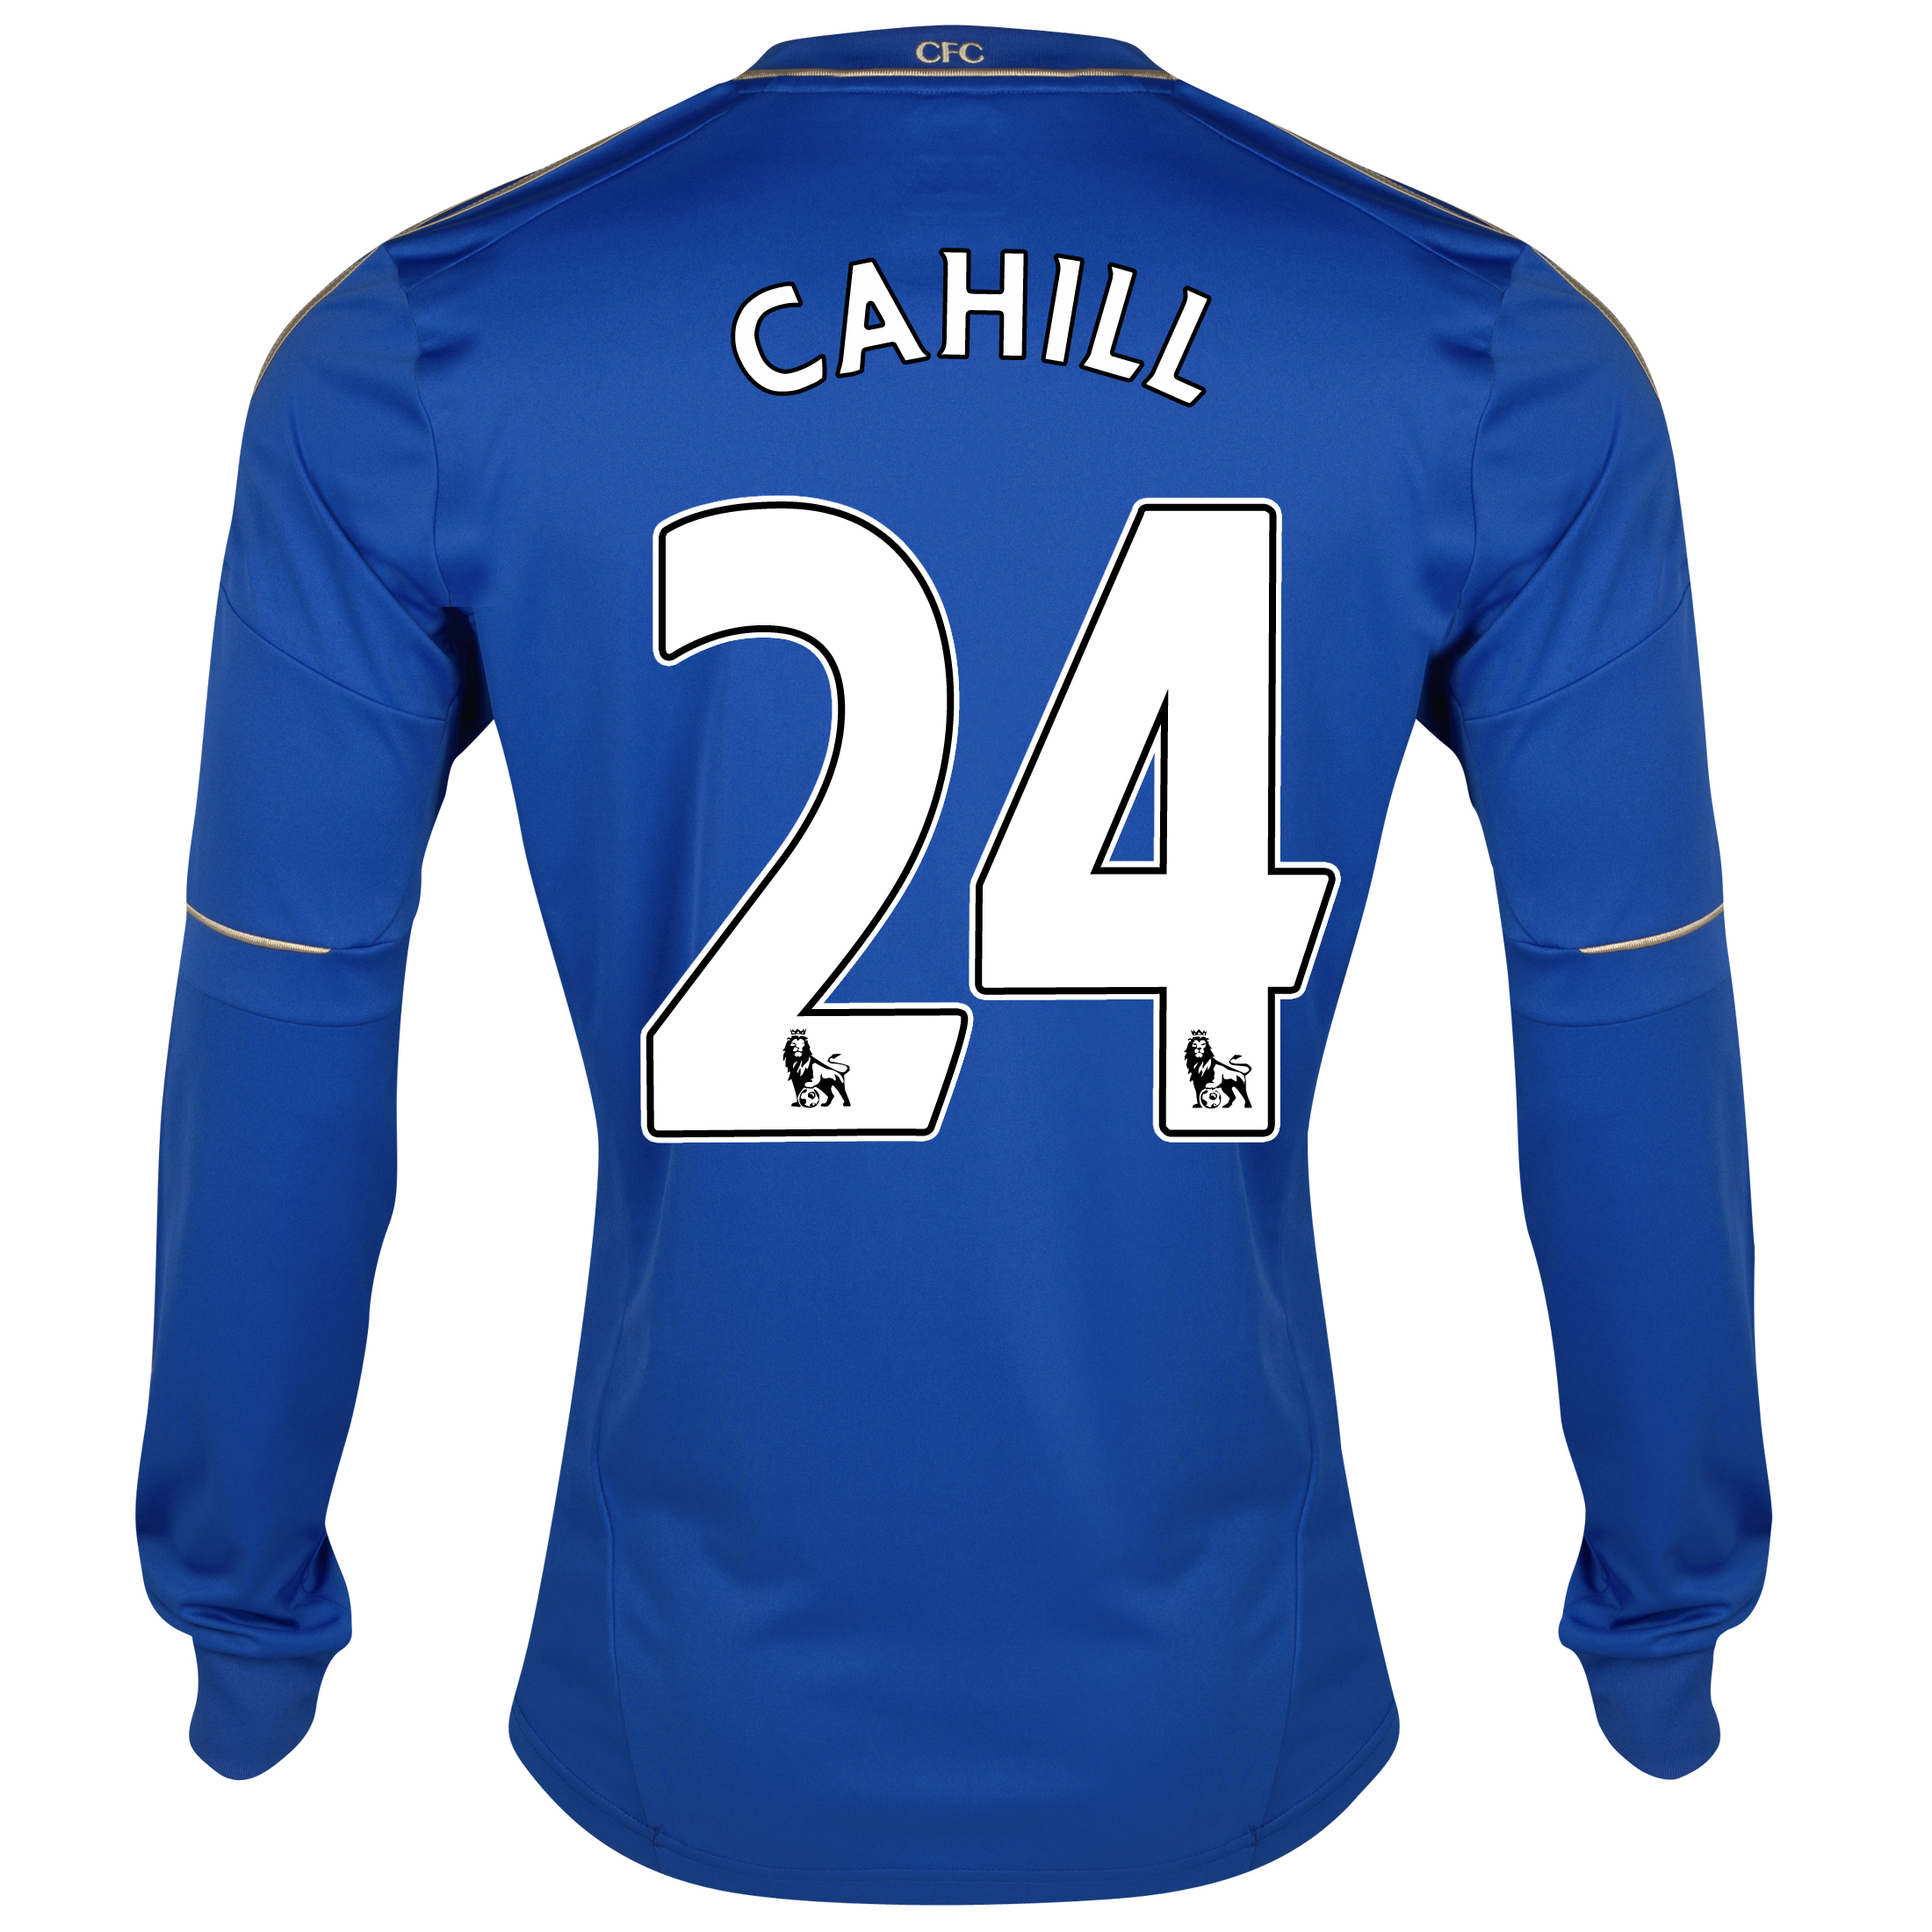 Chelsea Home Shirt 2012/13 - Long Sleeved with Cahill 24 printing